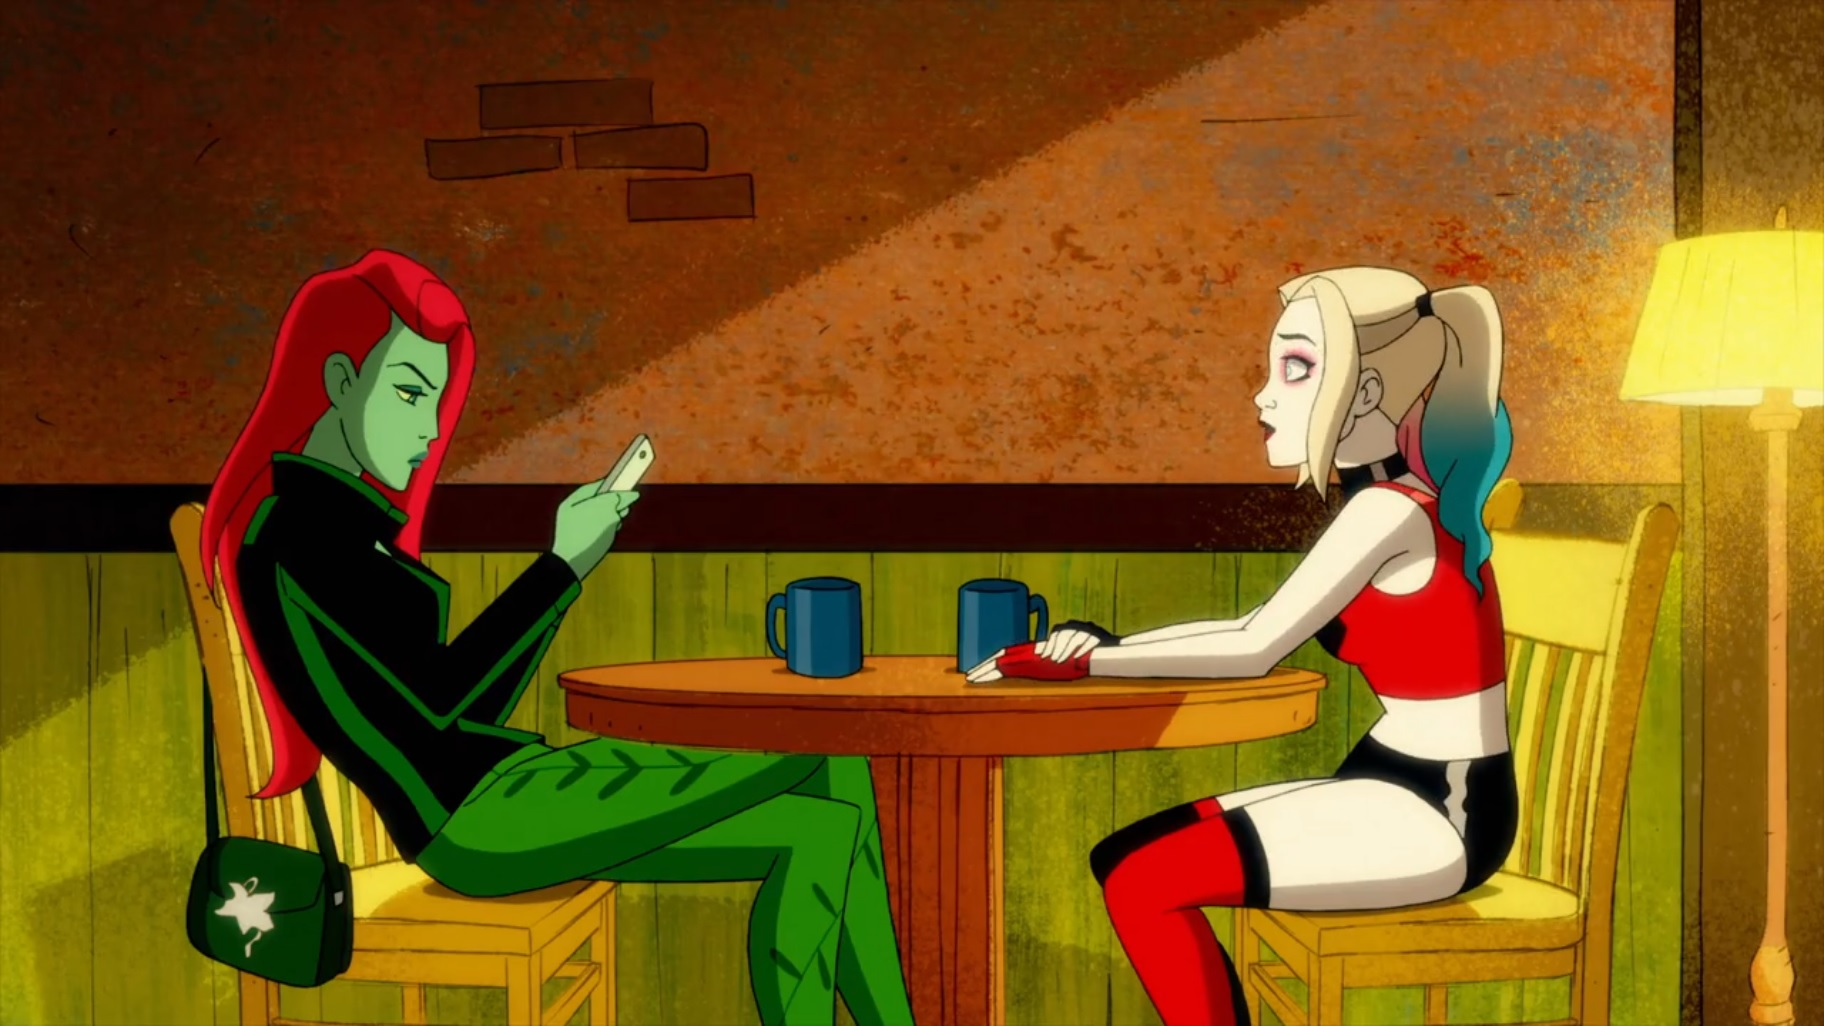 Harley Quinn – T01E09 – A Seat at the Table [Sub. Español]